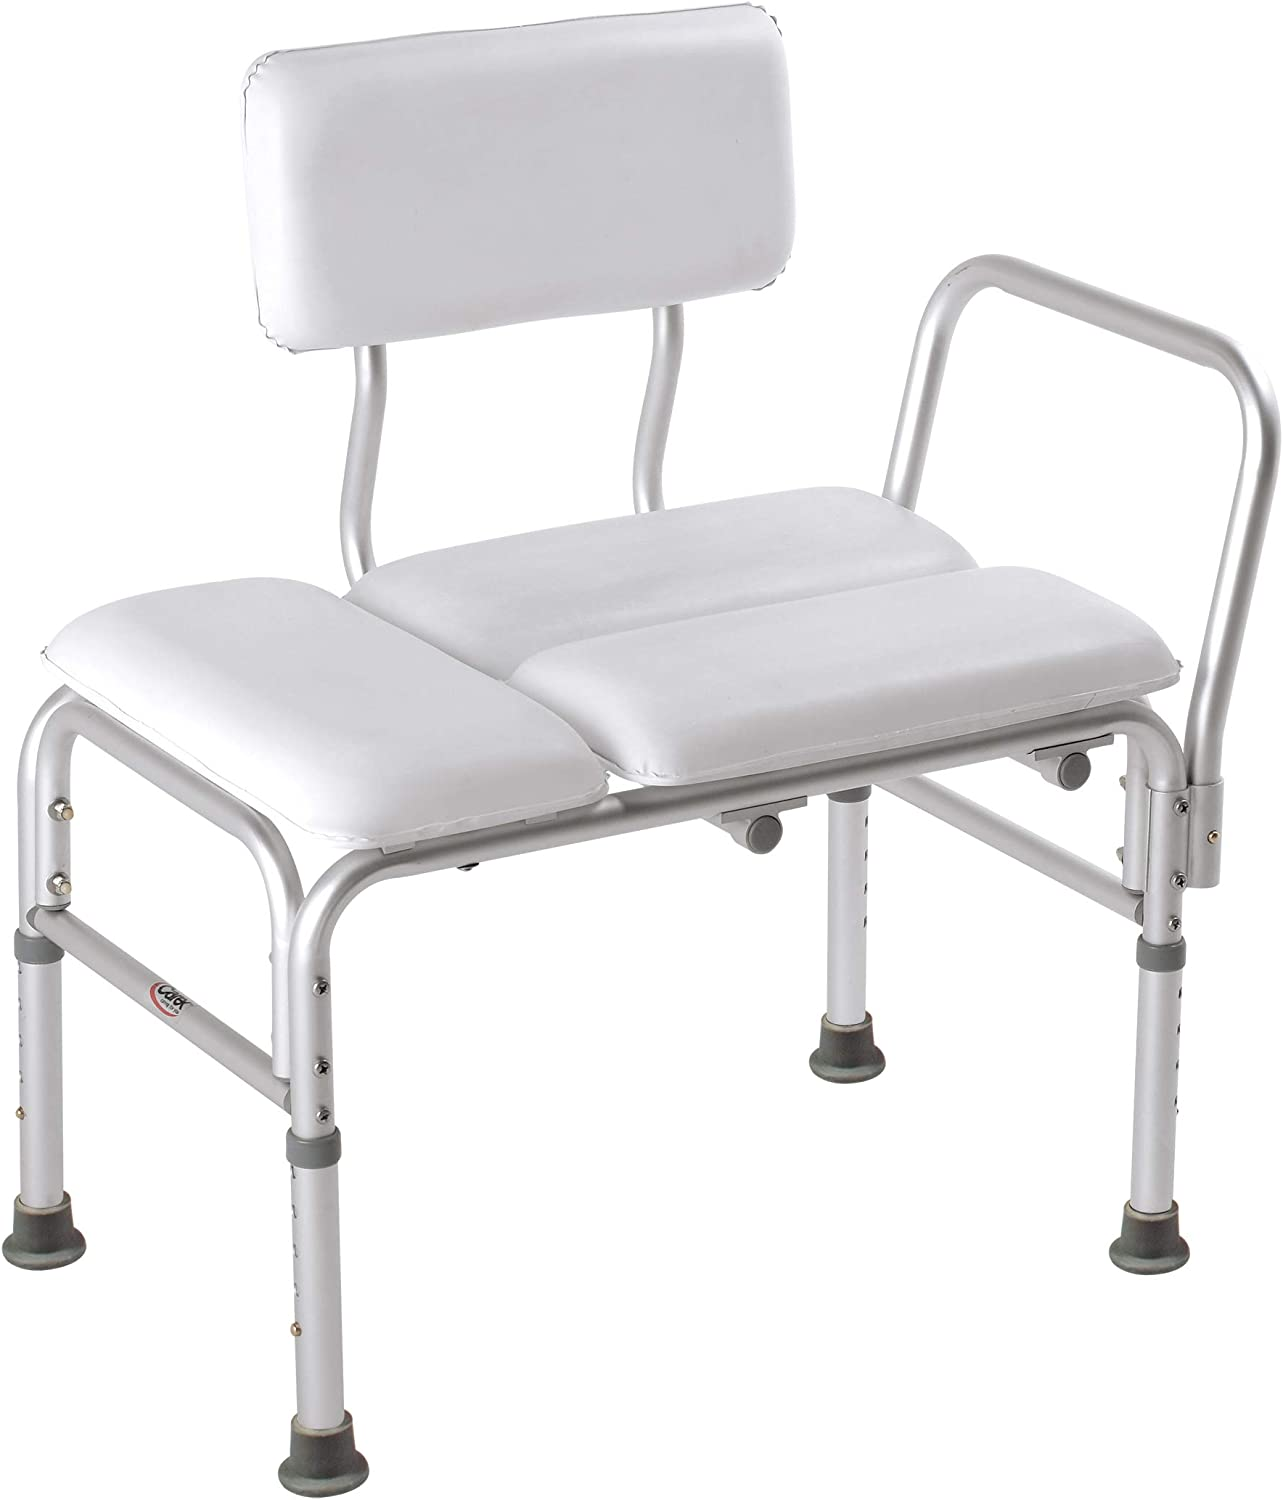 Carex Deluxe Padded Tub Transfer Bench - Shower Bench with Height Adjustable Legs - Convertible to Right or Left Hand Entry